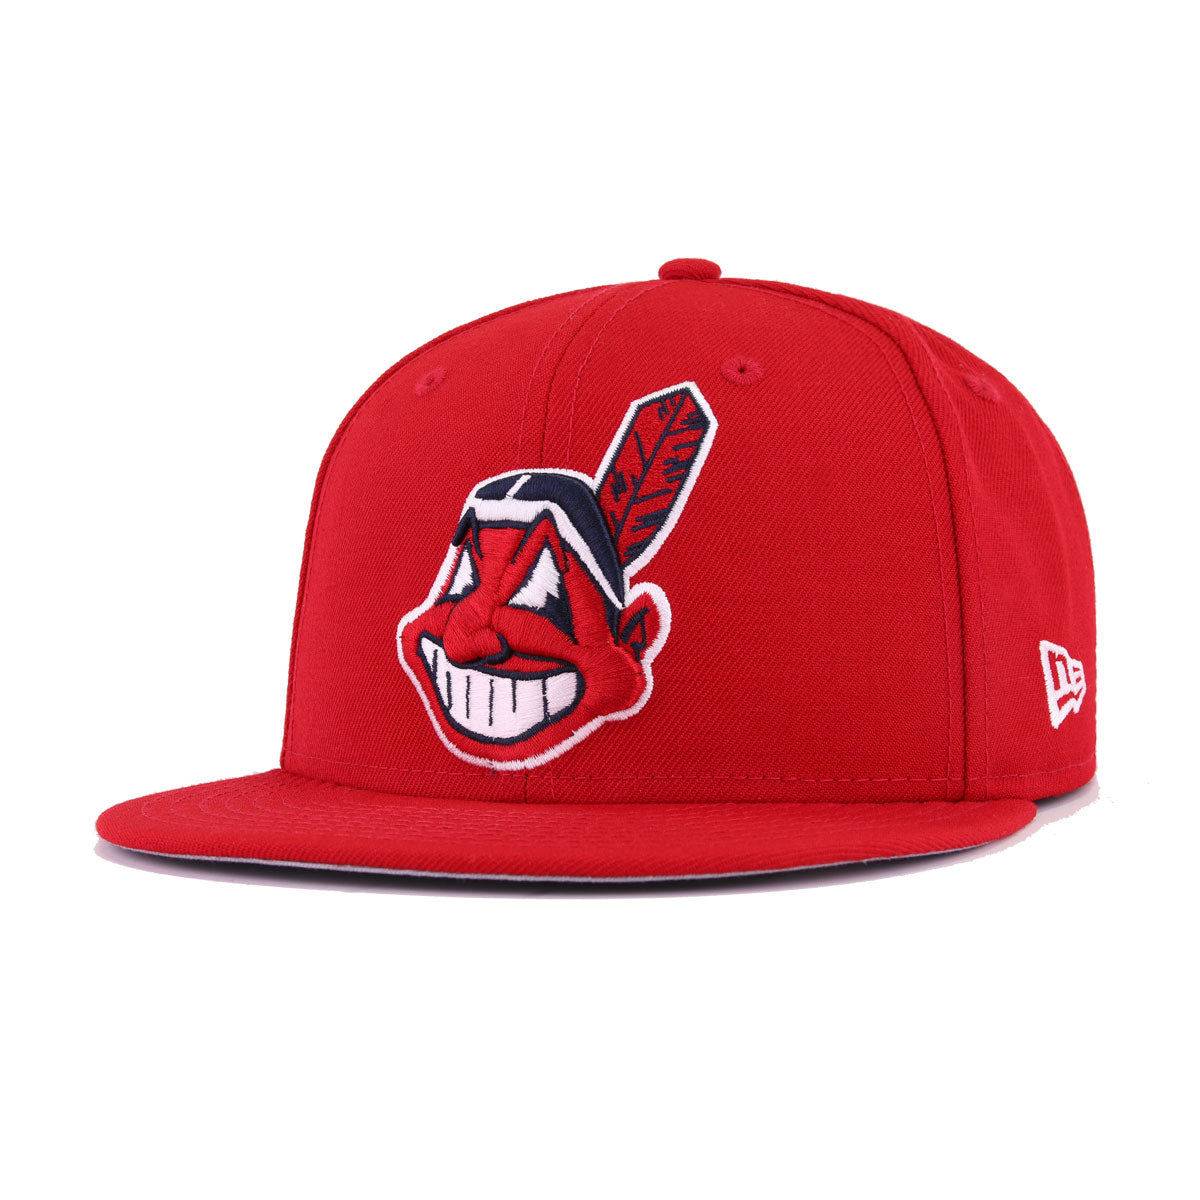 7cdc07a2801 Cleveland Indians Scarlet 1997 World Series New Era 9Fifty Snapback